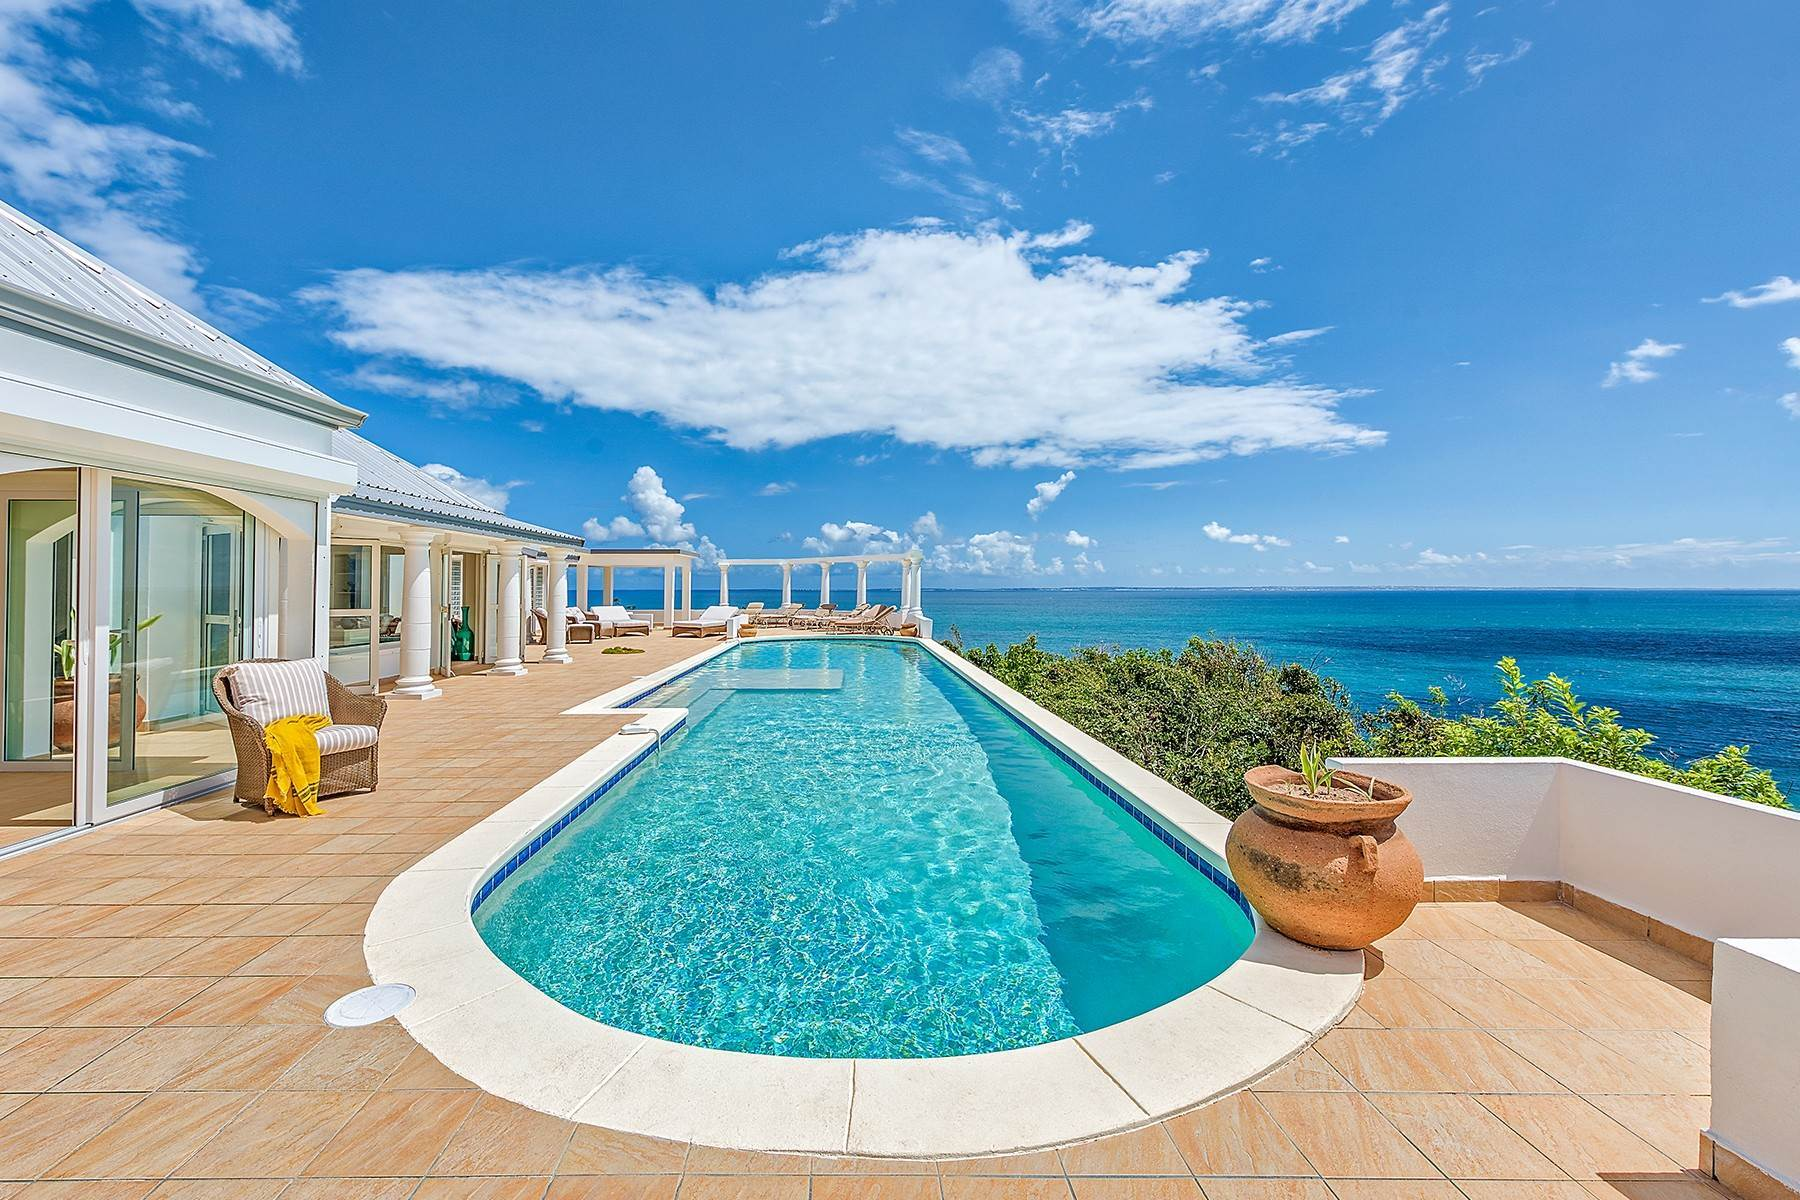 Single Family Homes at Terrasse de Mer Terres Basses, 97150, St. Martin